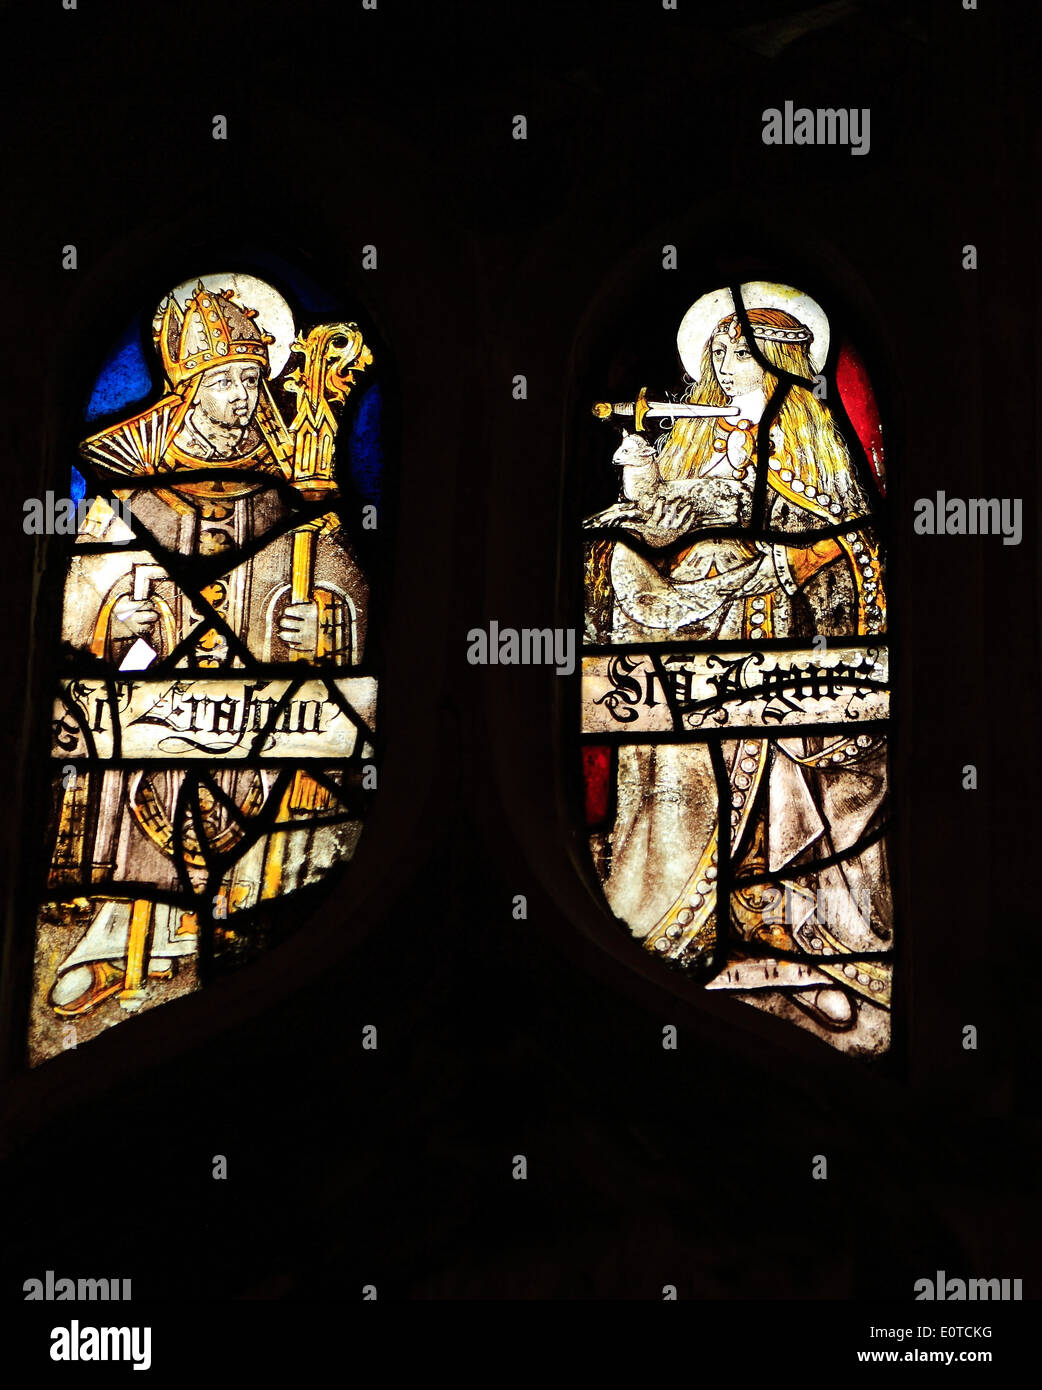 Medieval stained glass, St. Erasmus, Bishop of Formia, St. Agnes with dagger at her throat, holding a lamb, Sandringham Parish - Stock Image